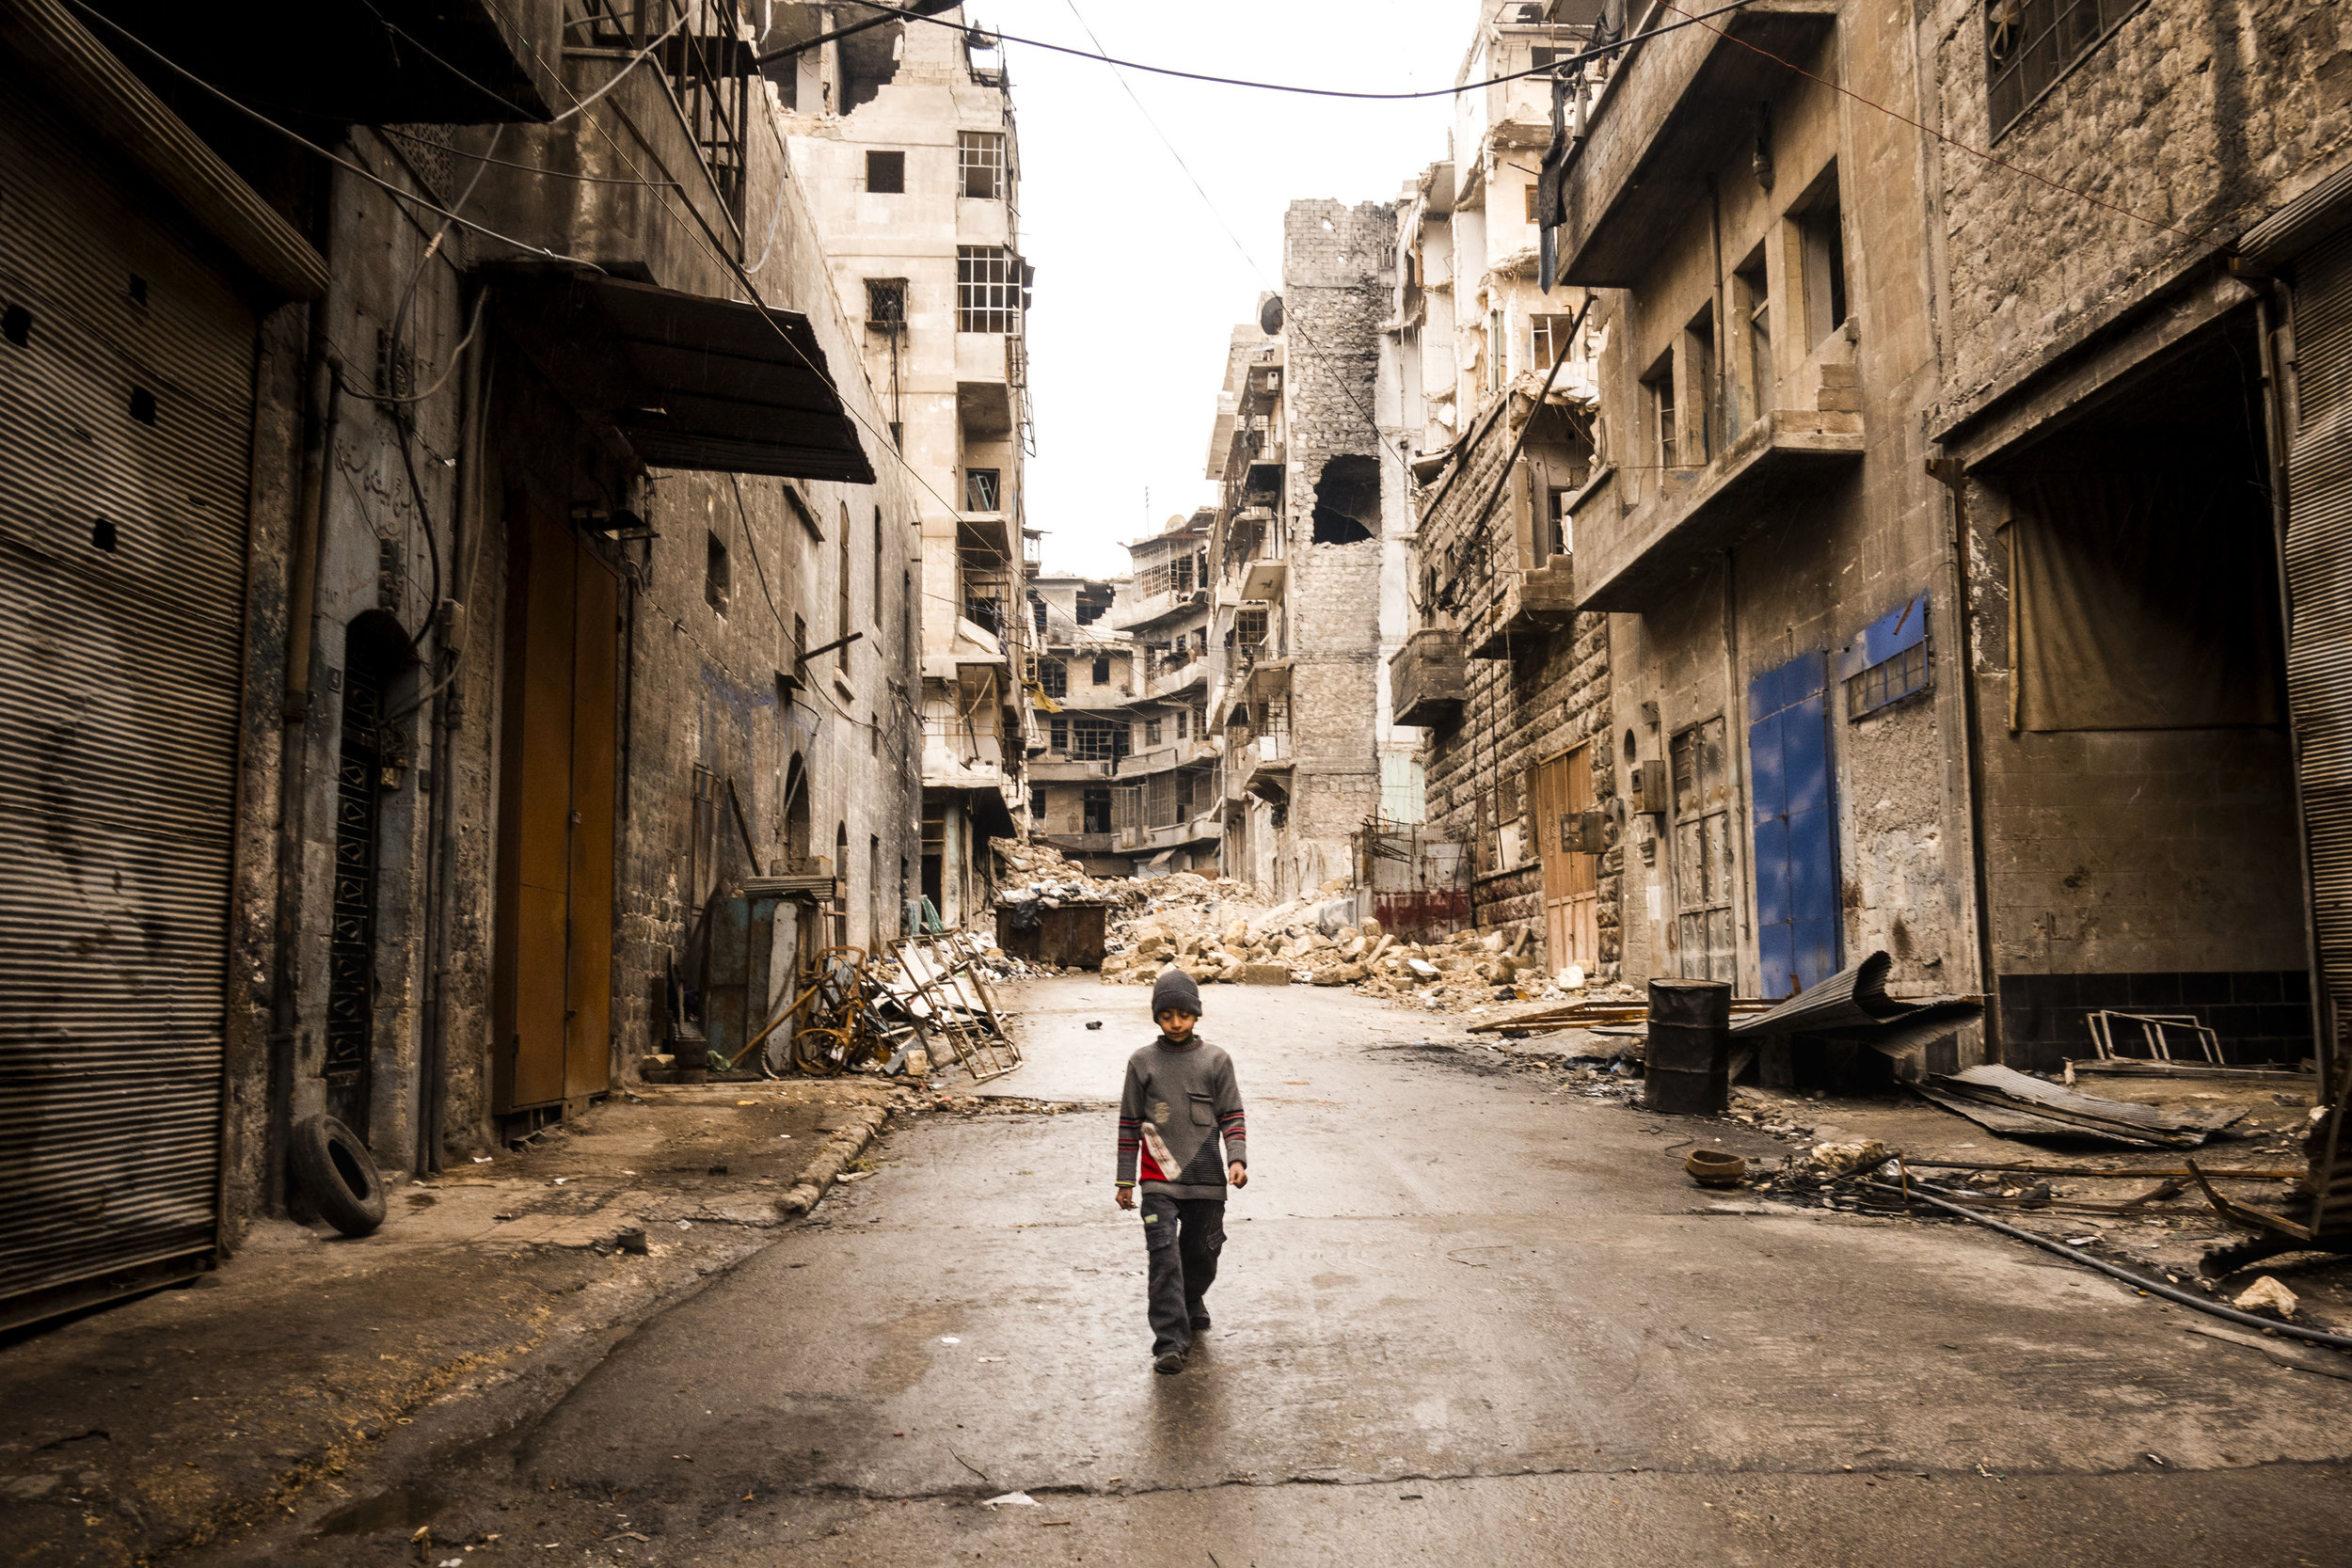 Aleppo After the Fall - By Sebastian Liste